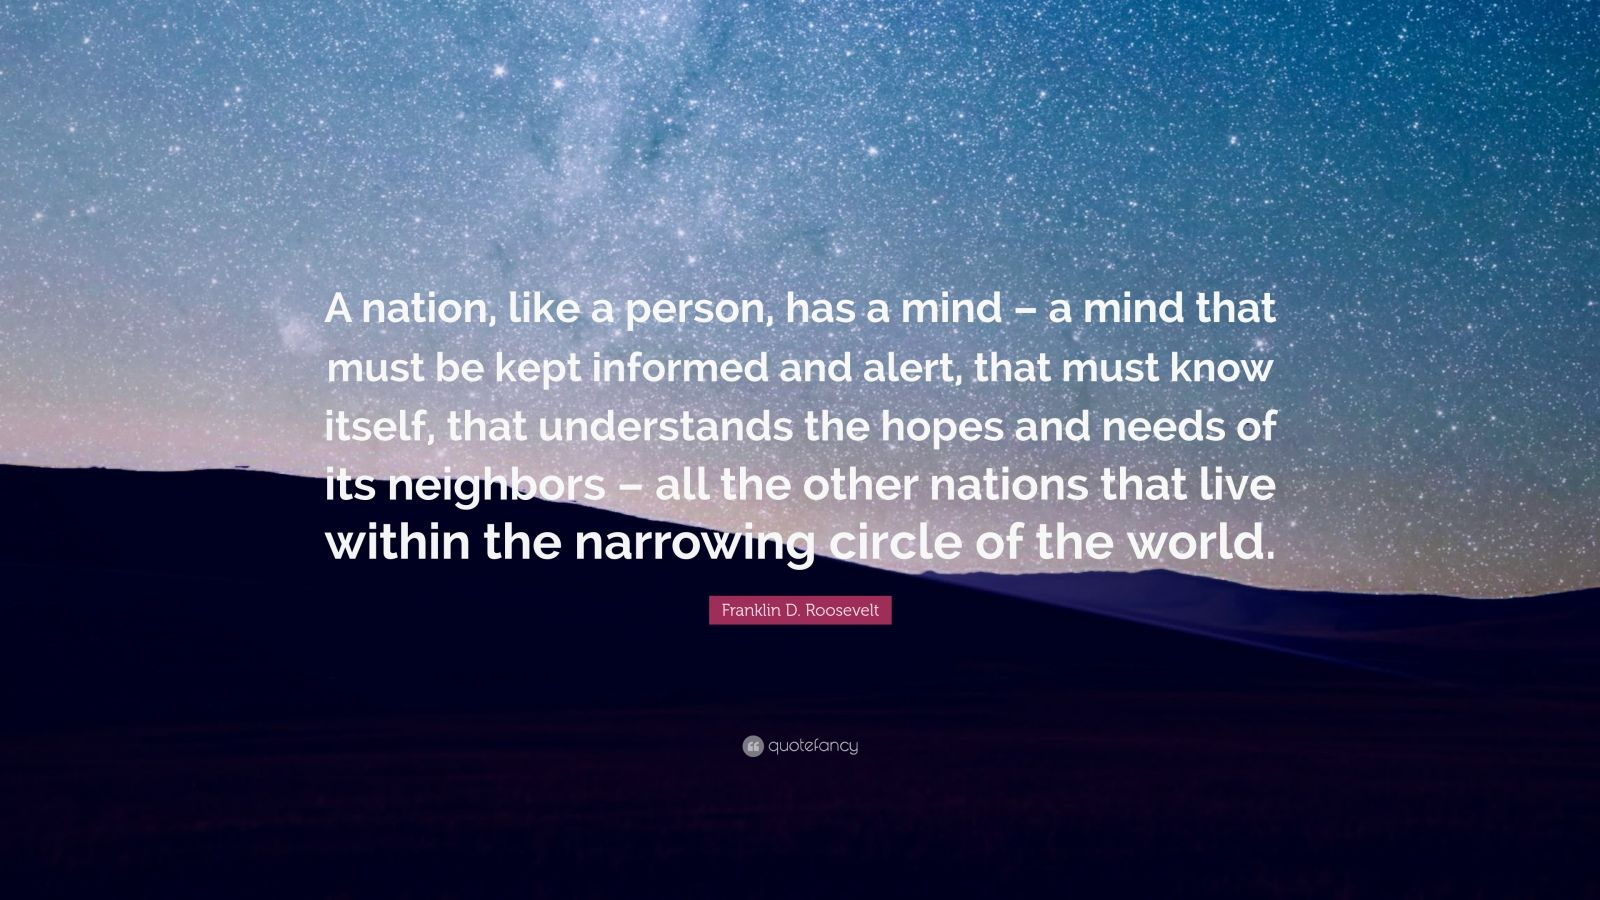 "Franklin D. Roosevelt Quote: ""A nation, like a person, has a mind – a mind that must be kept informed and alert, that must know itself, that understands the hopes and needs of its neighbors – all the other nations that live within the narrowing circle of the world."""